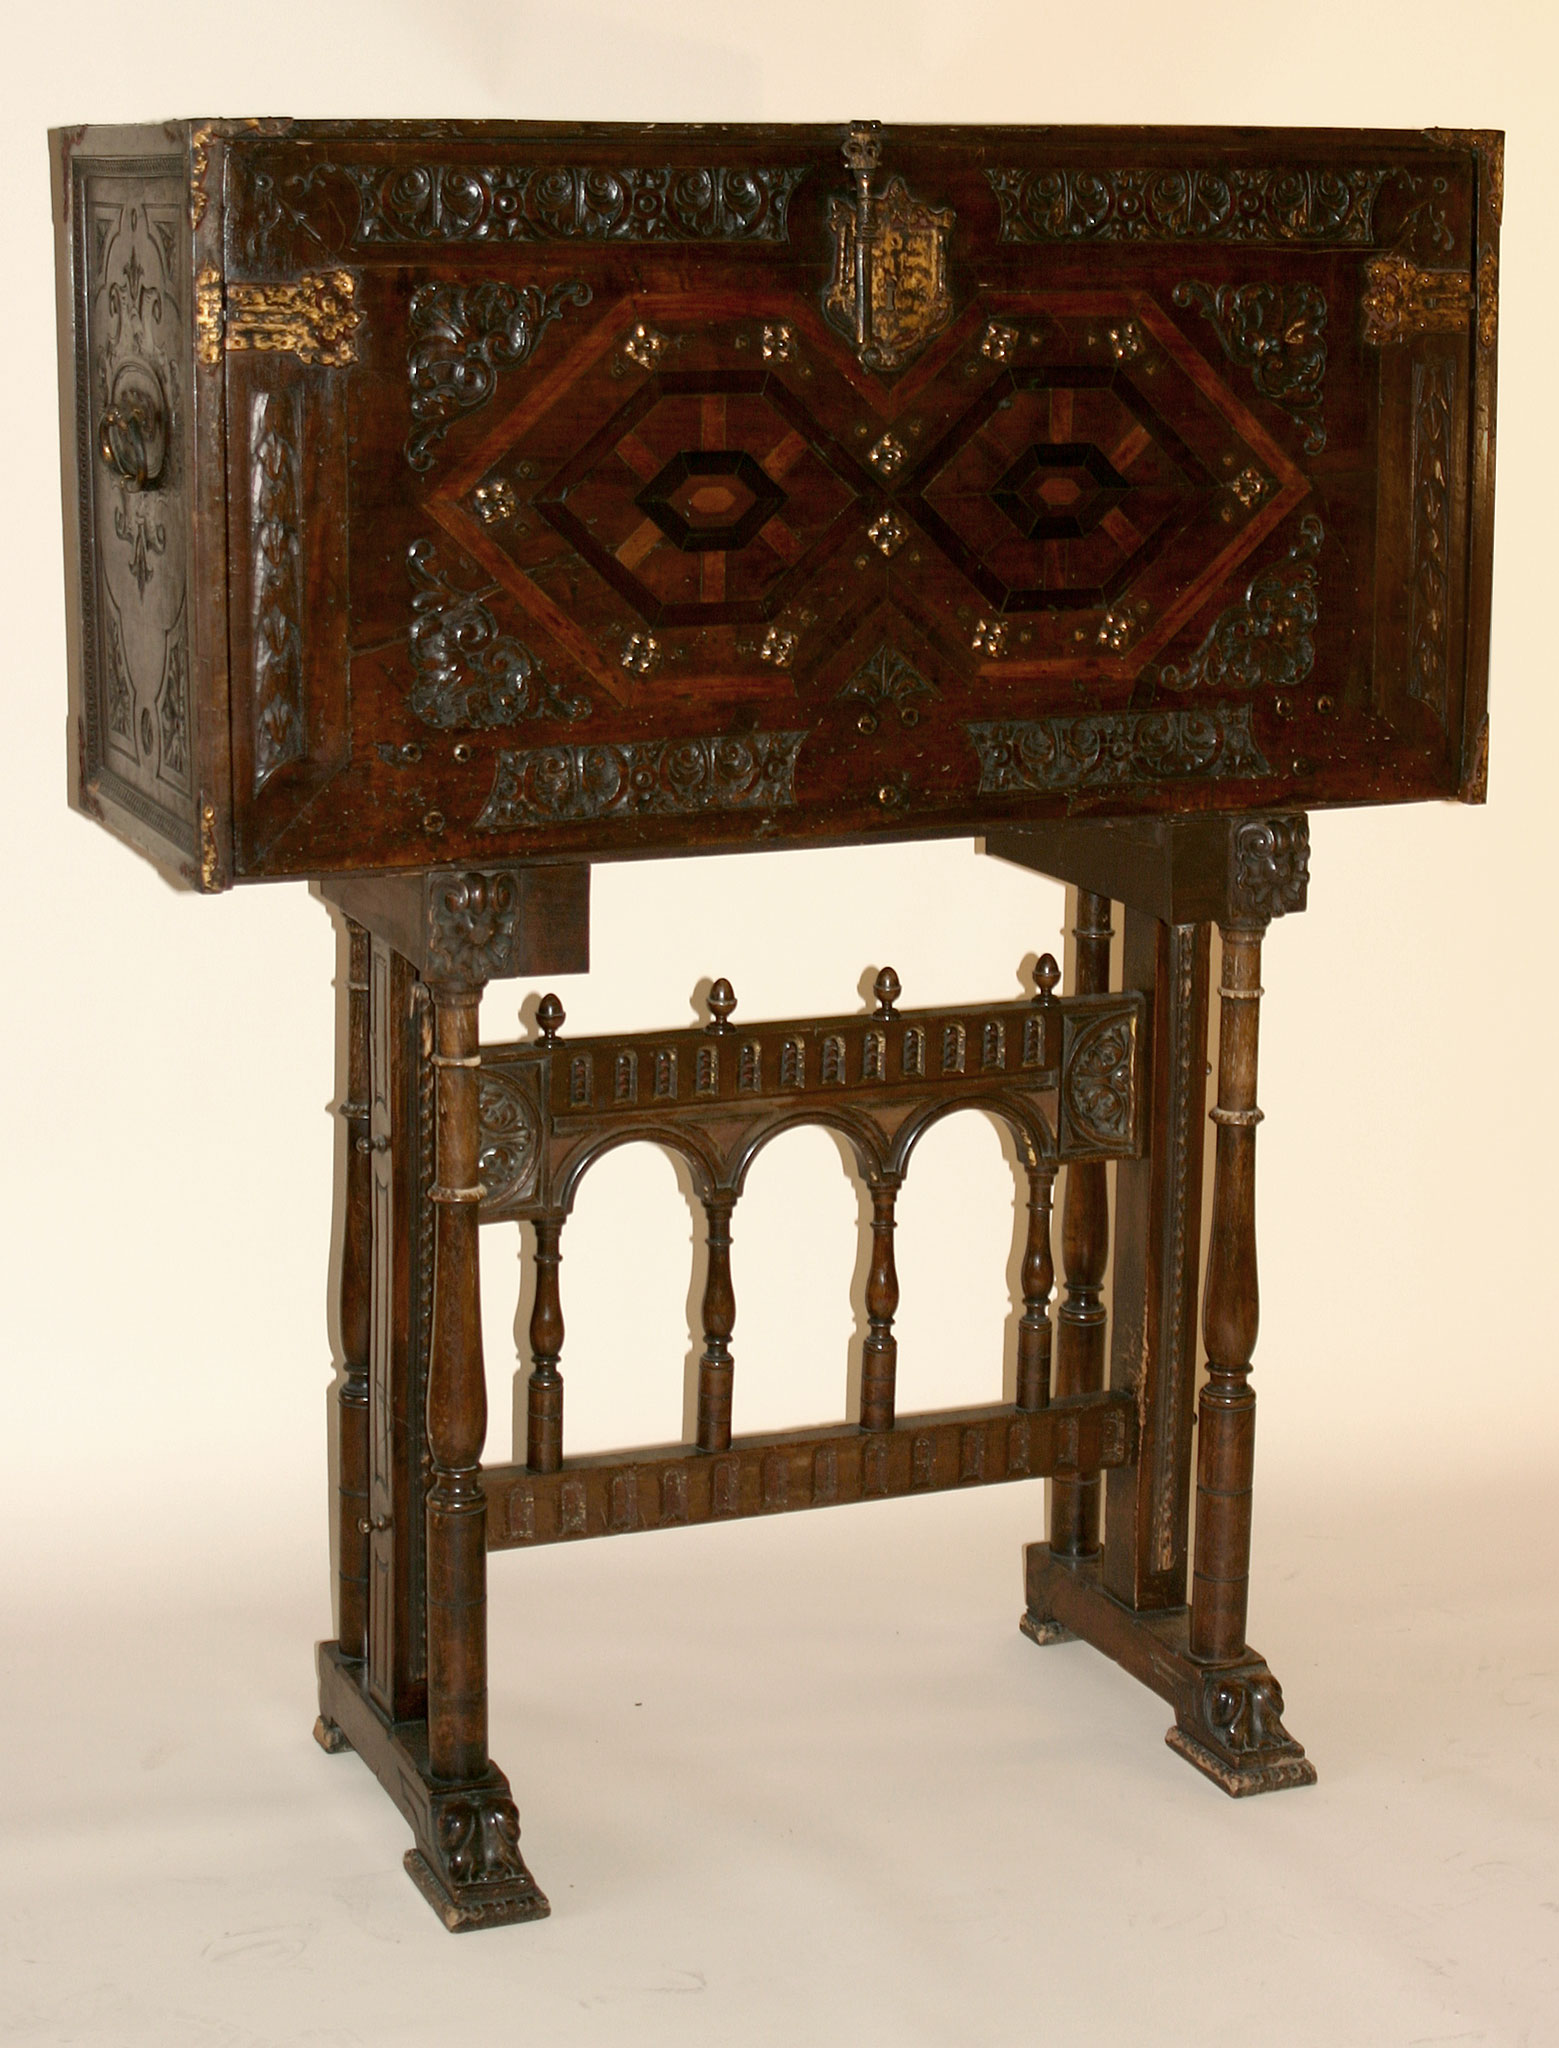 Spanish, iron-mounted, polychrome, parcel-gilt and bone-inlaid Vargue o  (travelling trunk on stand) - For Sale - Spanish, Iron-mounted, Polychrome, Parcel-gilt And Bone-inlaid